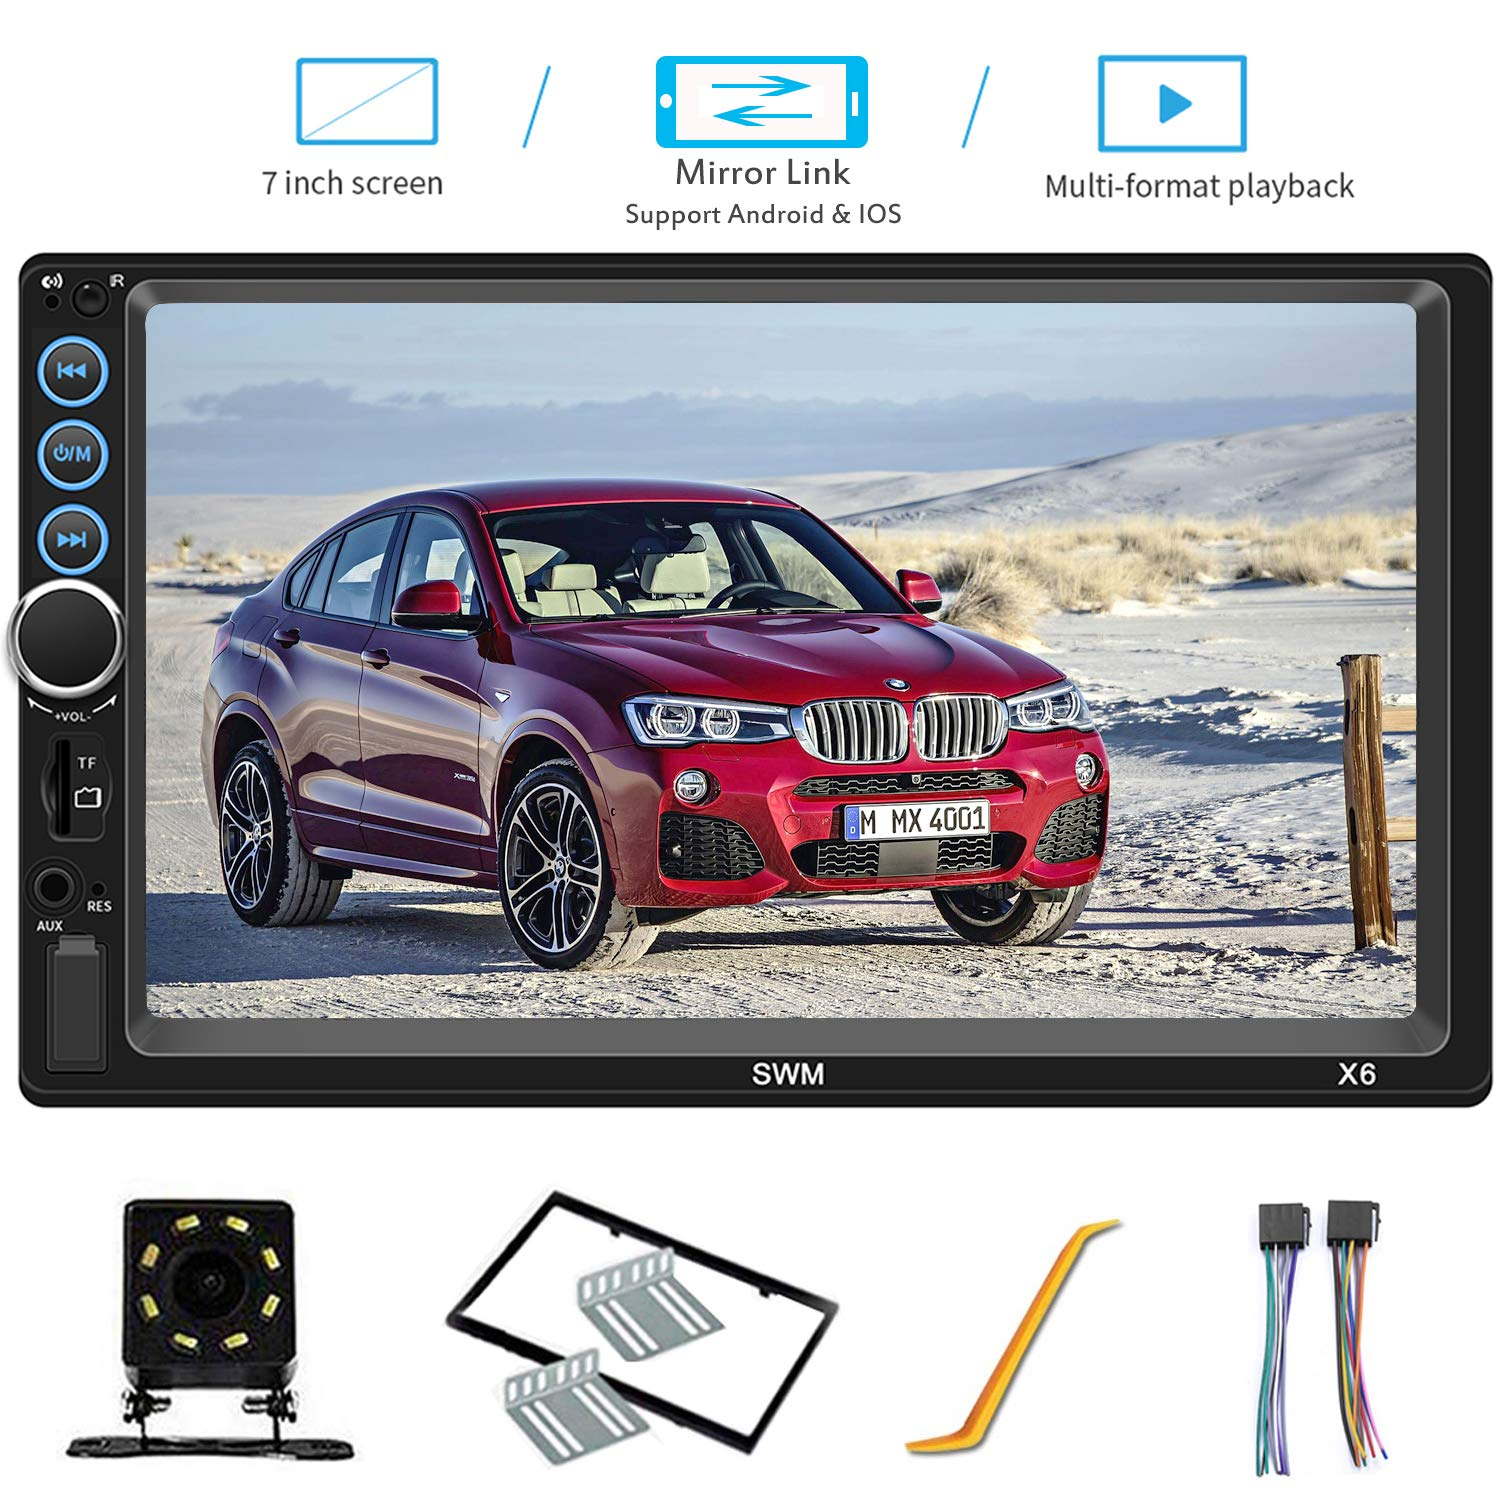 7 Inch Double Din Car Stereo Compatible with Bluetooth Headunit TF USB FM Aux-in Radio Audio Touchscreen MP5 Player Receiver Support Android & iPhone Mirror Link with Backup Rear-View Camera by H*Sheng TPK